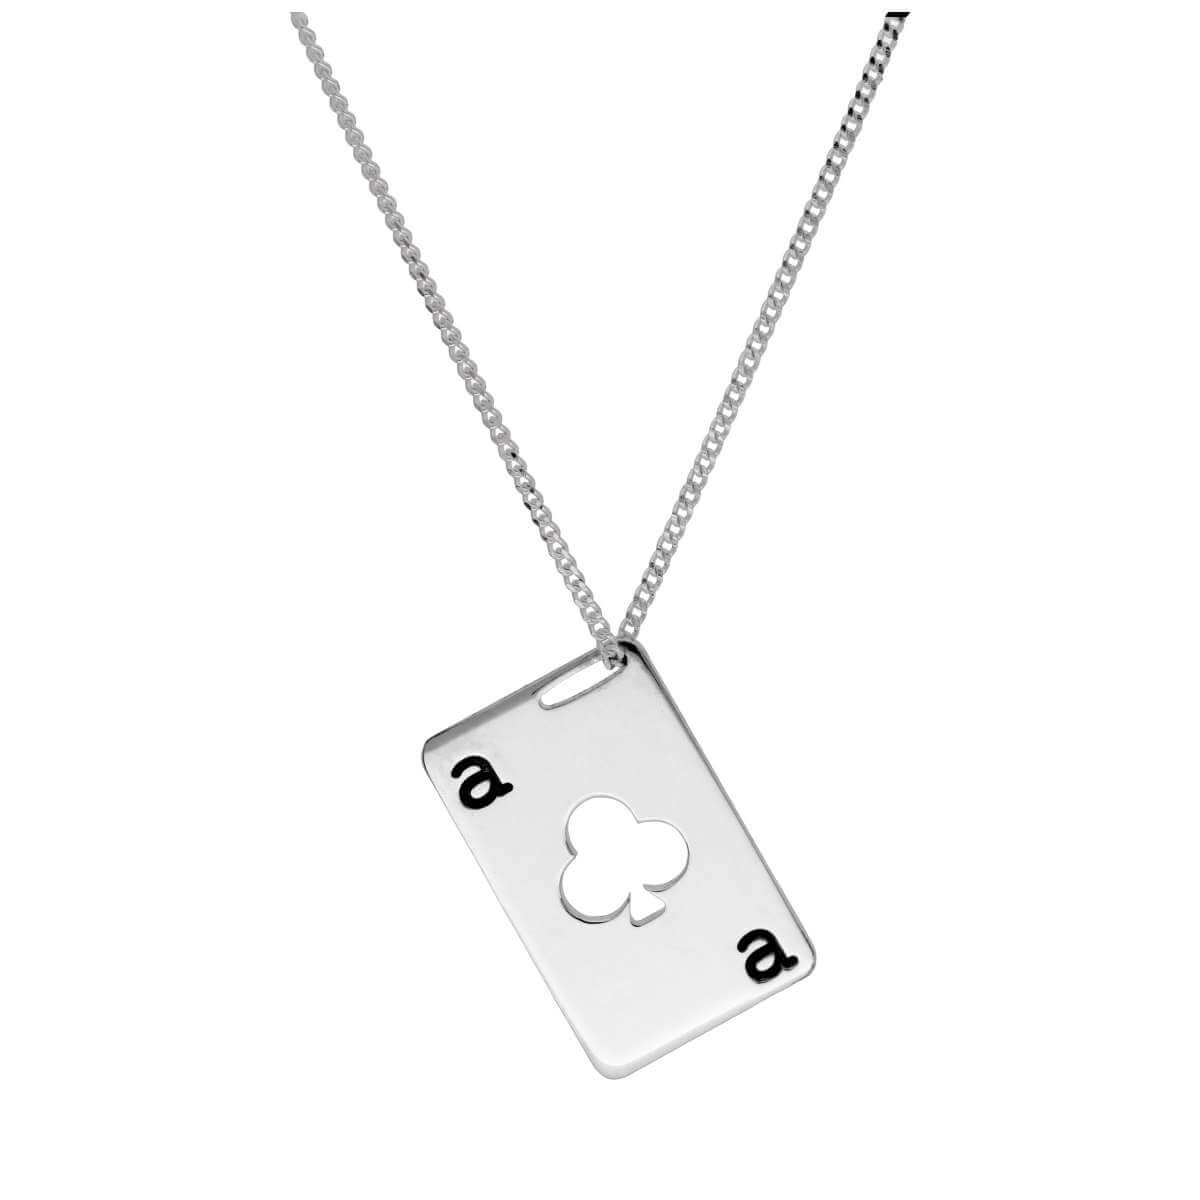 Bespoke Sterling Silver Clubs Playing Card Necklace 14-32 Inches